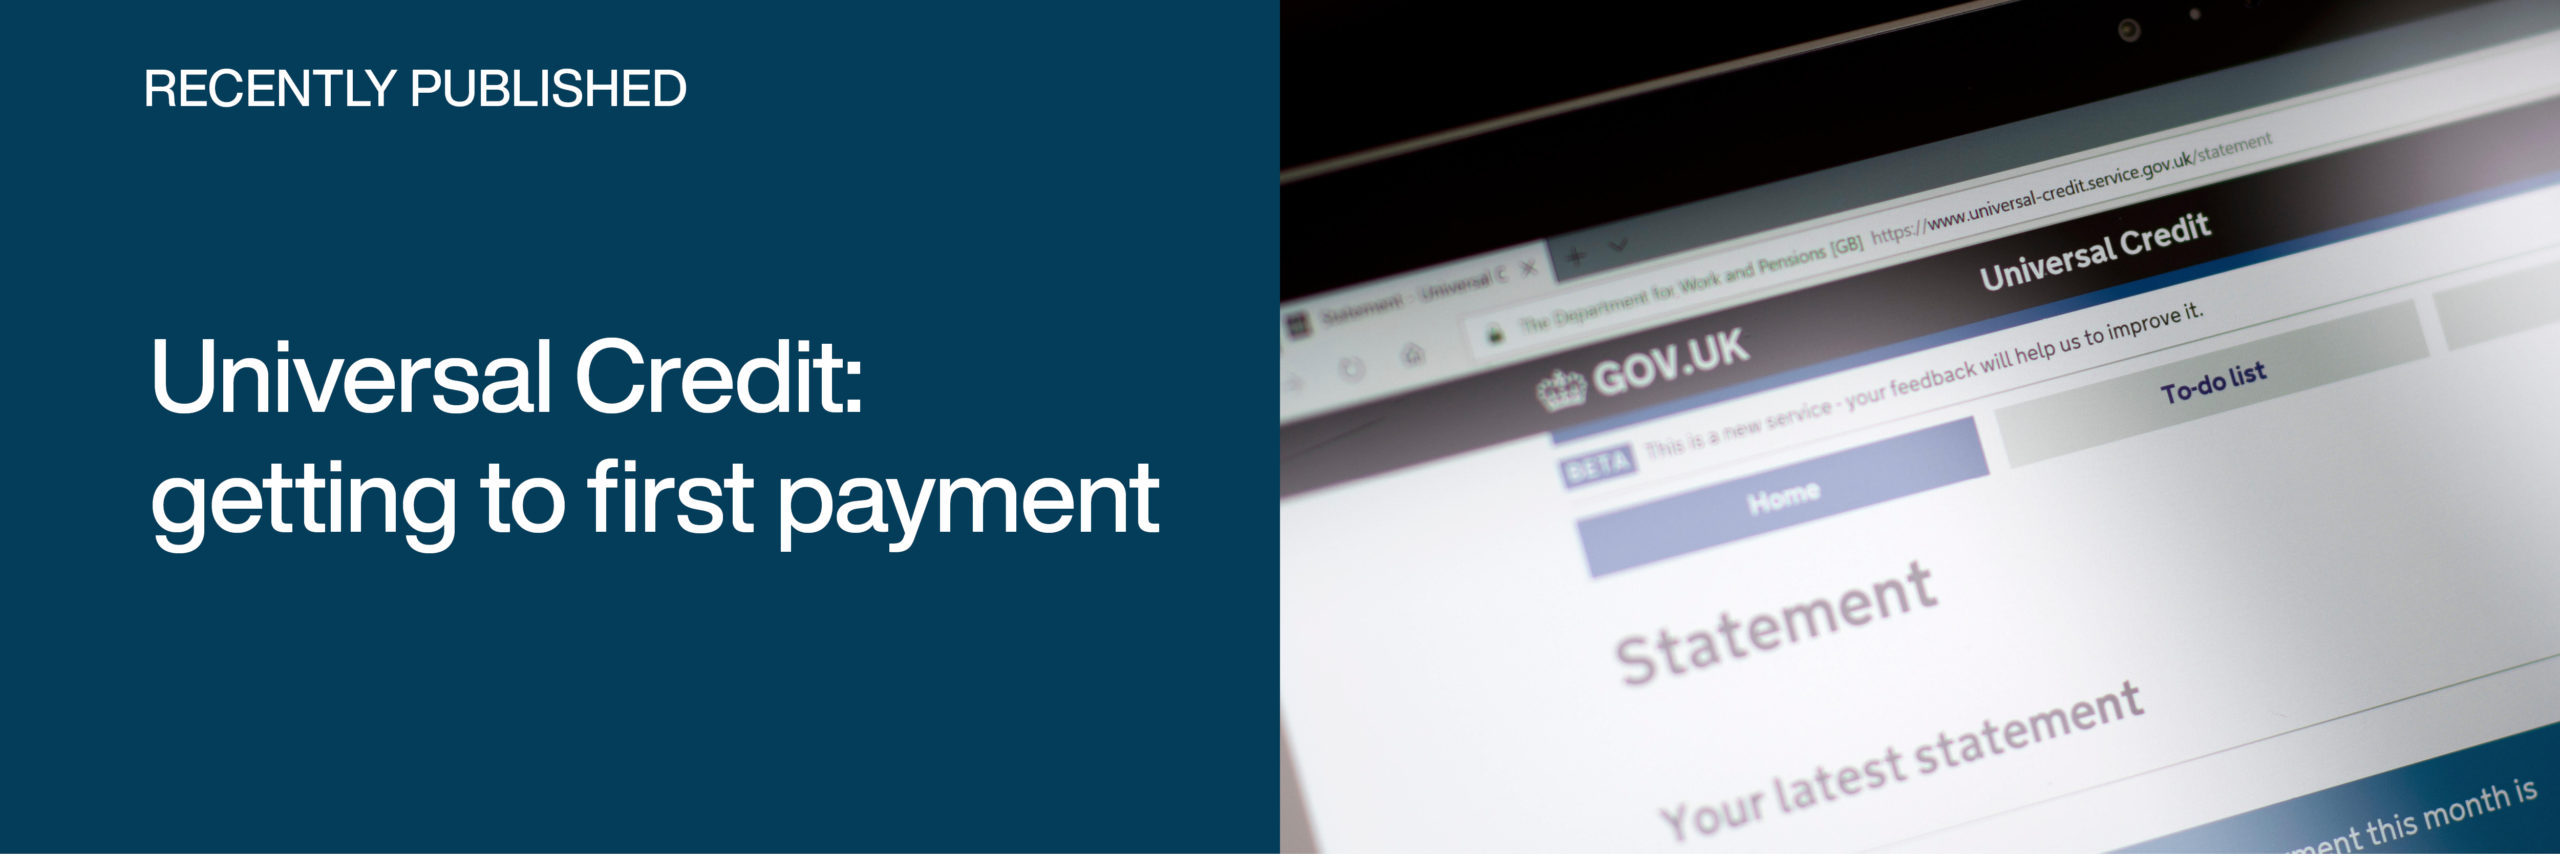 Recently published: Universal Credit - getting to first payment